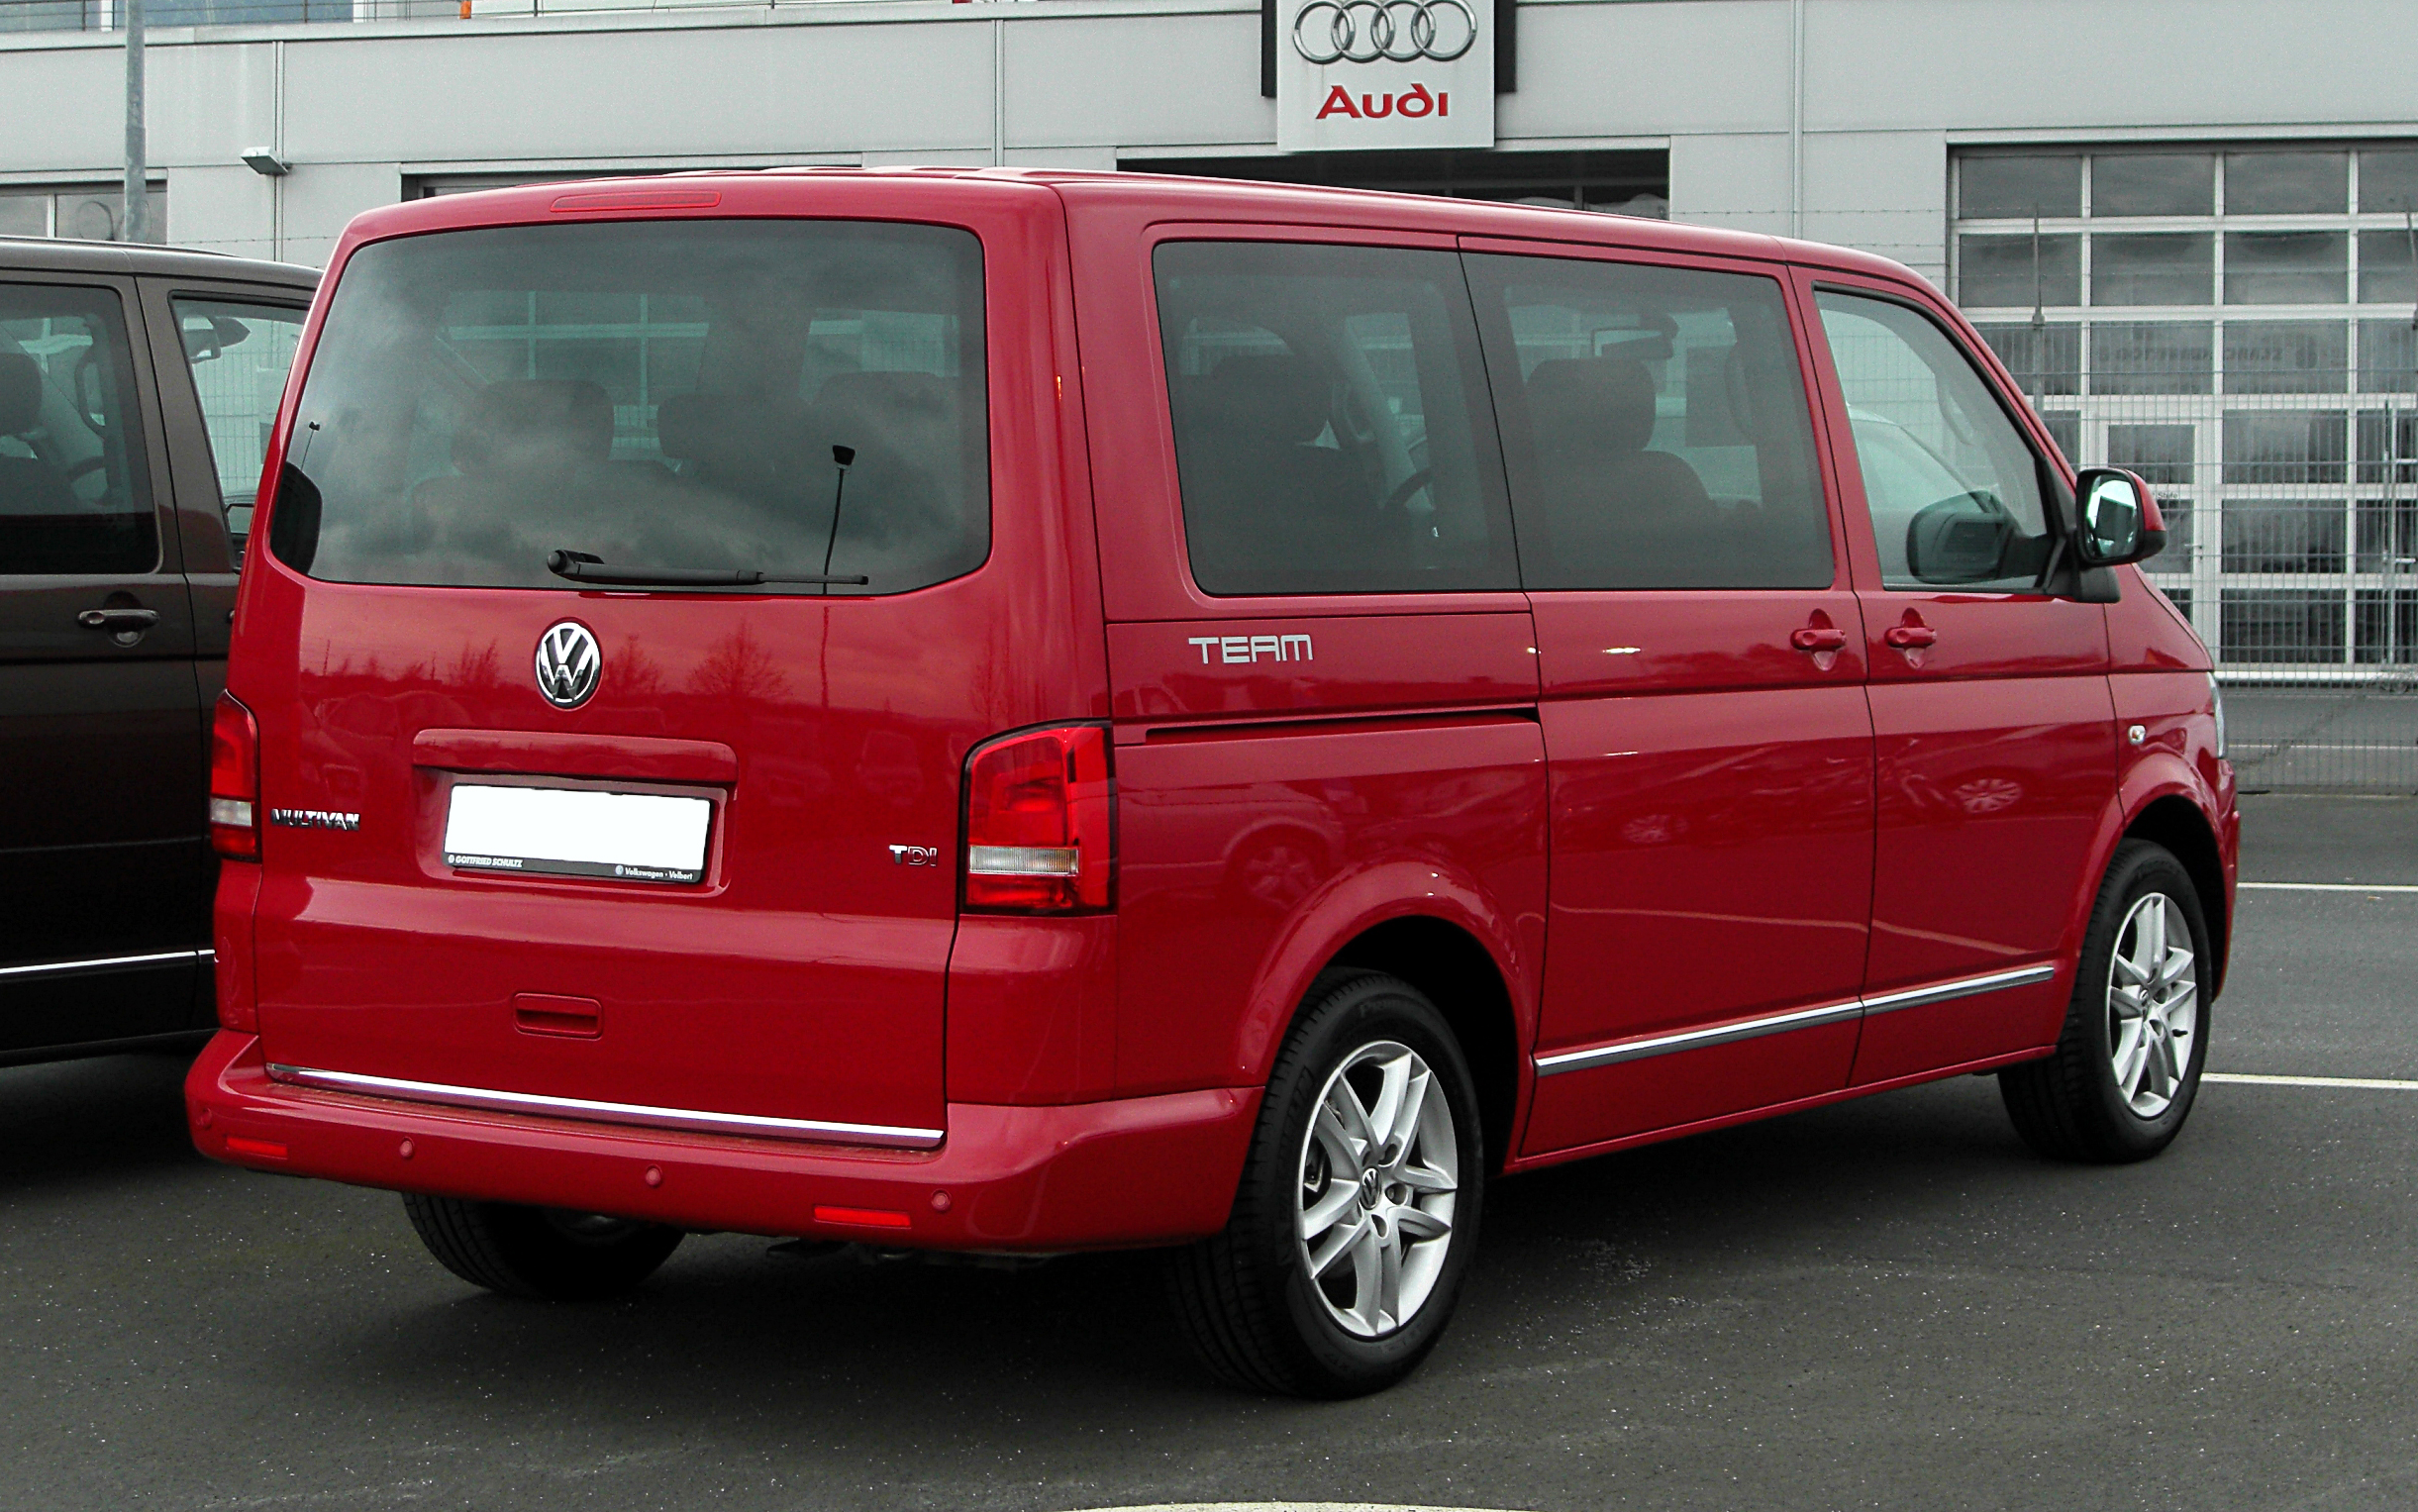 file vw multivan 2 0 tdi comfortline team t5 facelift. Black Bedroom Furniture Sets. Home Design Ideas